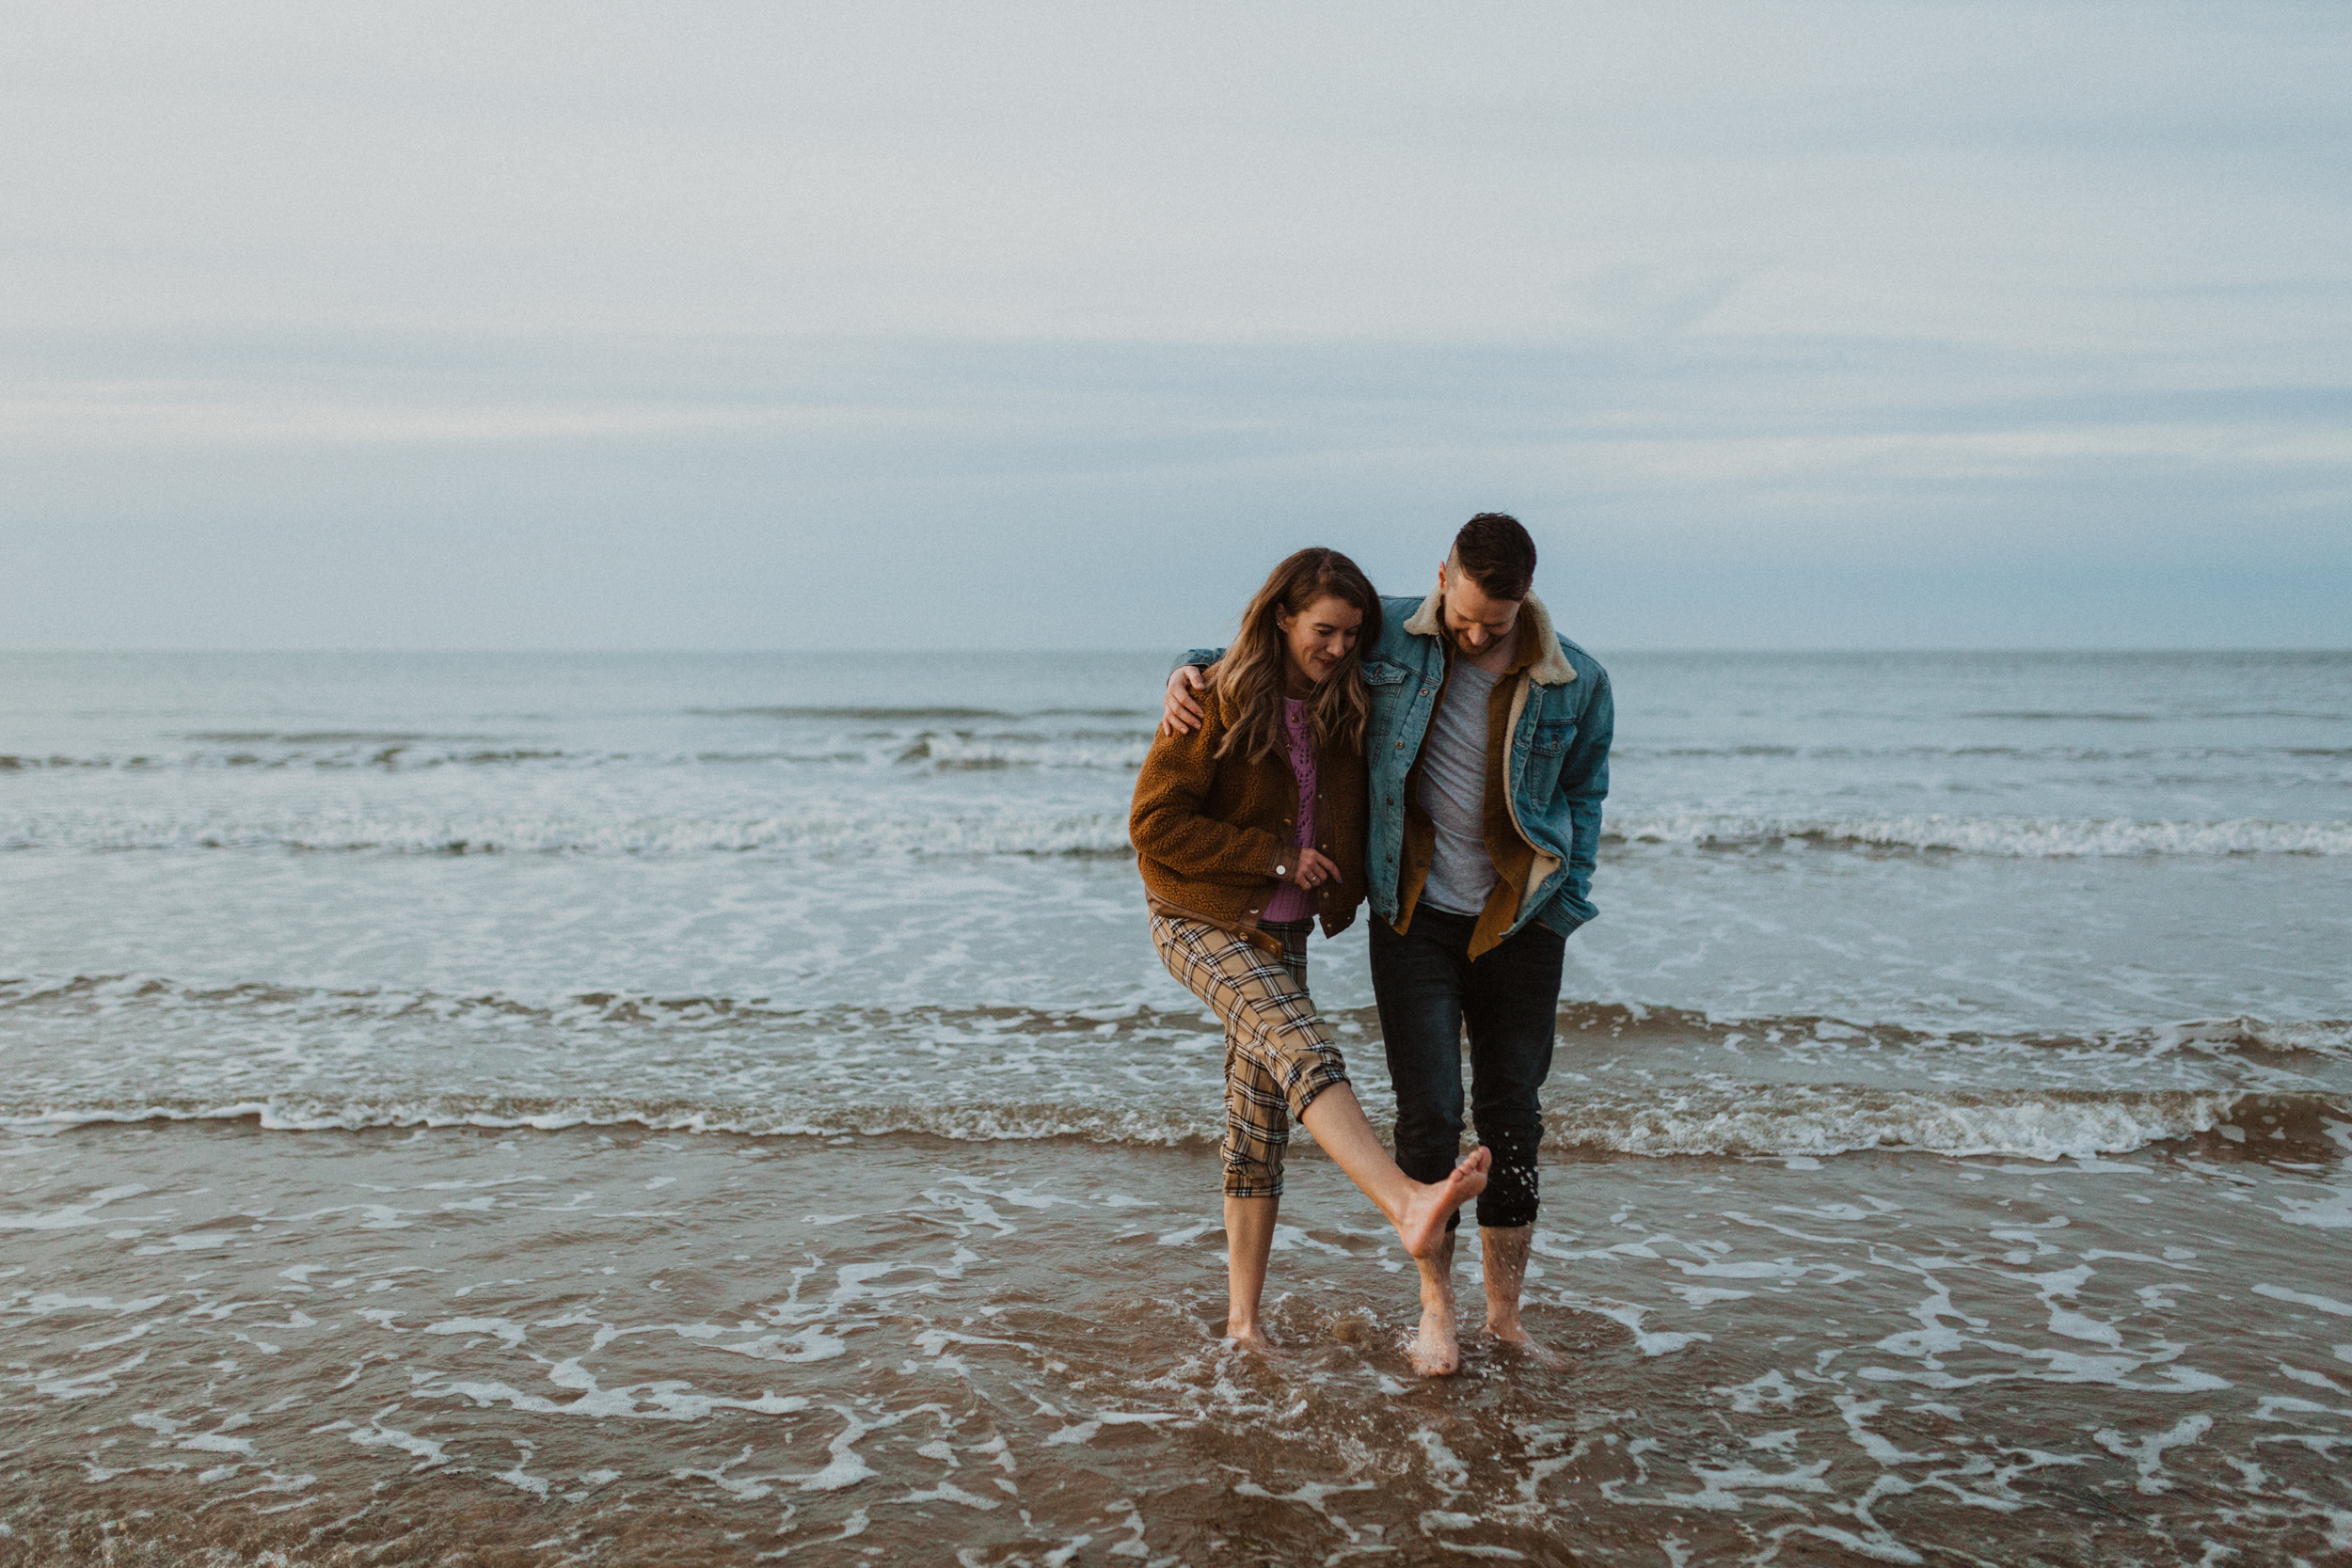 Claire-Liam-Beach-Coastal-Engagement-Session-Norfolk-Darina-Stoda-Photography-34.jpg